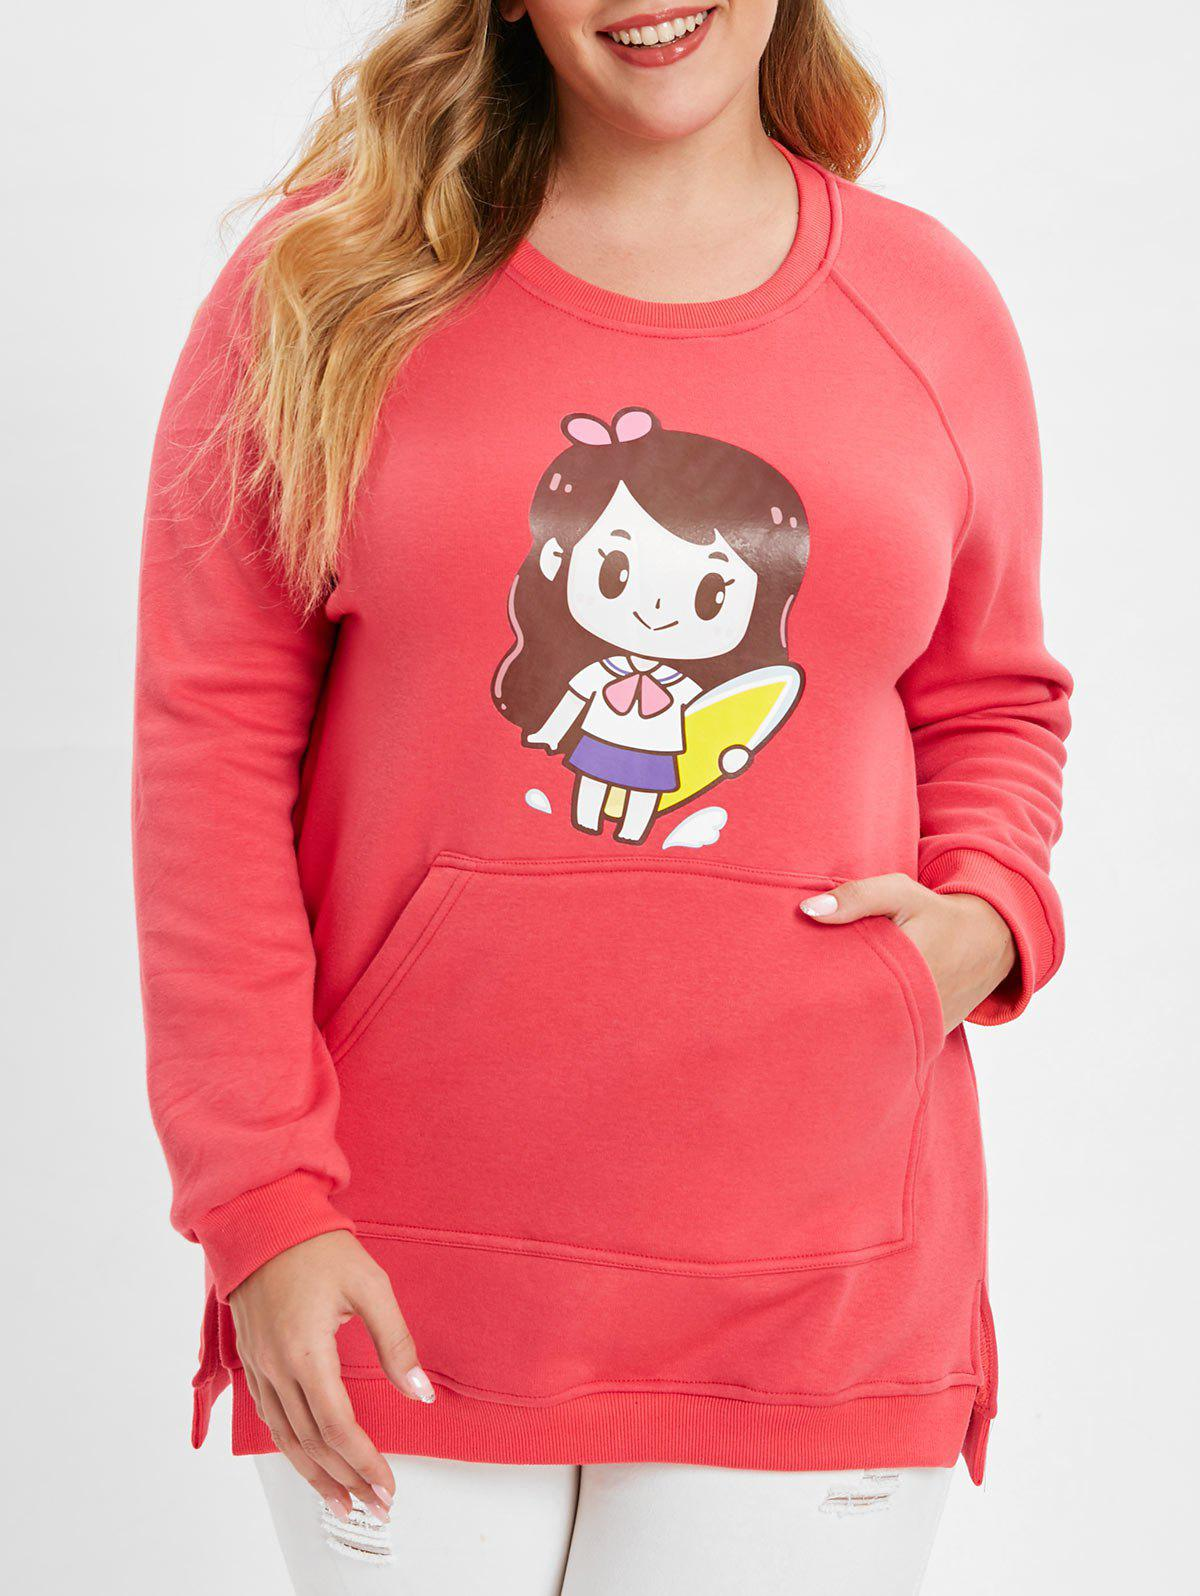 Plus Size Kangaroo Pocket Printed Sweatshirt